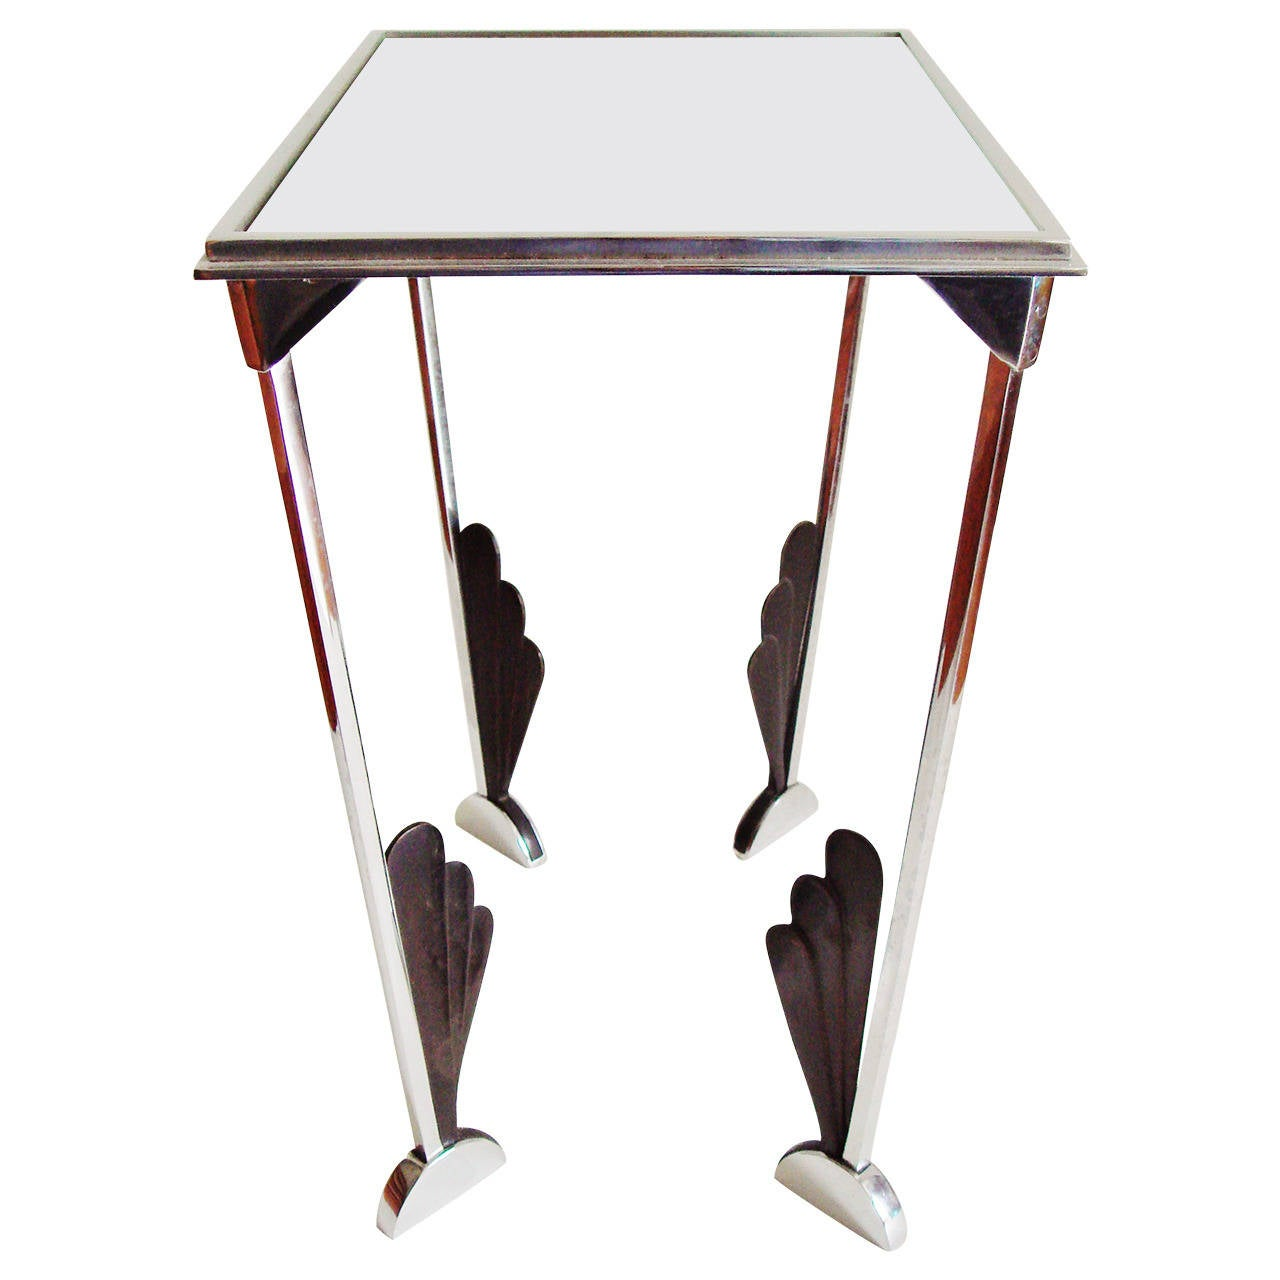 American Art Deco Chrome, Black and Mirror Topped Tray Table or Magazine Stand